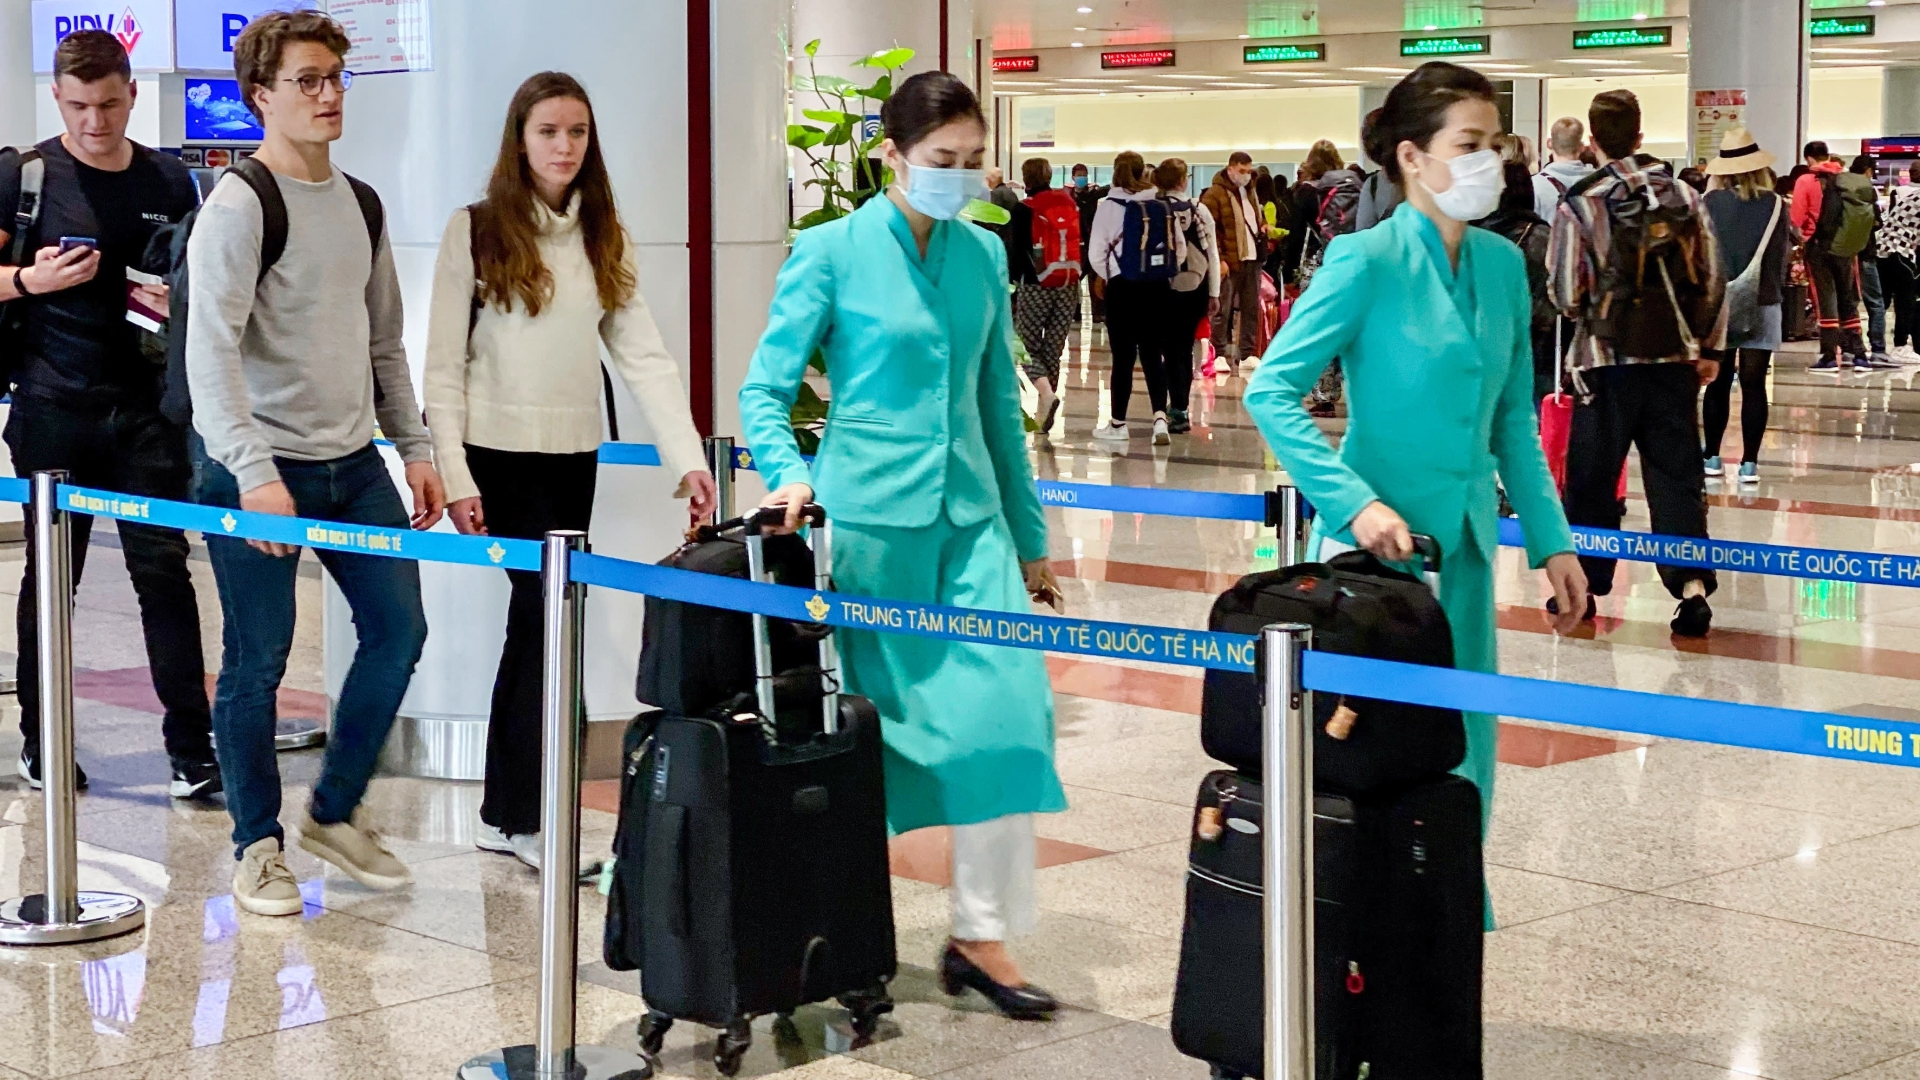 europe urges vietnam to resume international flights as fta takes effect